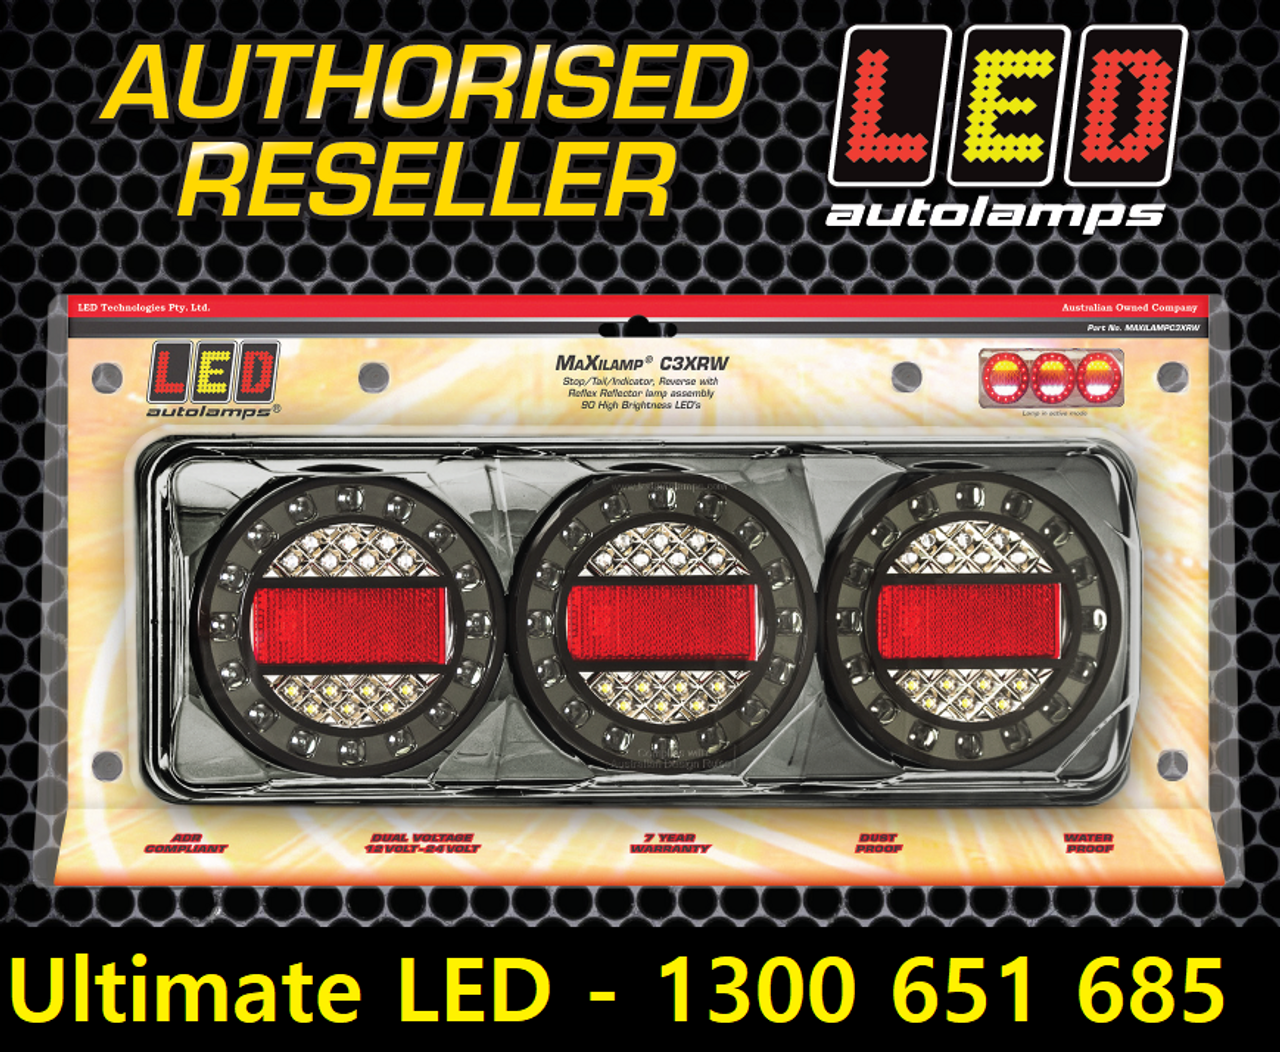 Genuine Maxilamp Combination Tail Light. Medium Tray & Truck Series Light. Diffused Tail Function. Sequential Indicator. Clear Lens with Red Ring. Stop, Tail, Indicator & Reverse Lights. Twin Pack. Multi-Volt. Autolamp. 3854ARWM-2. 7 Year Warranty